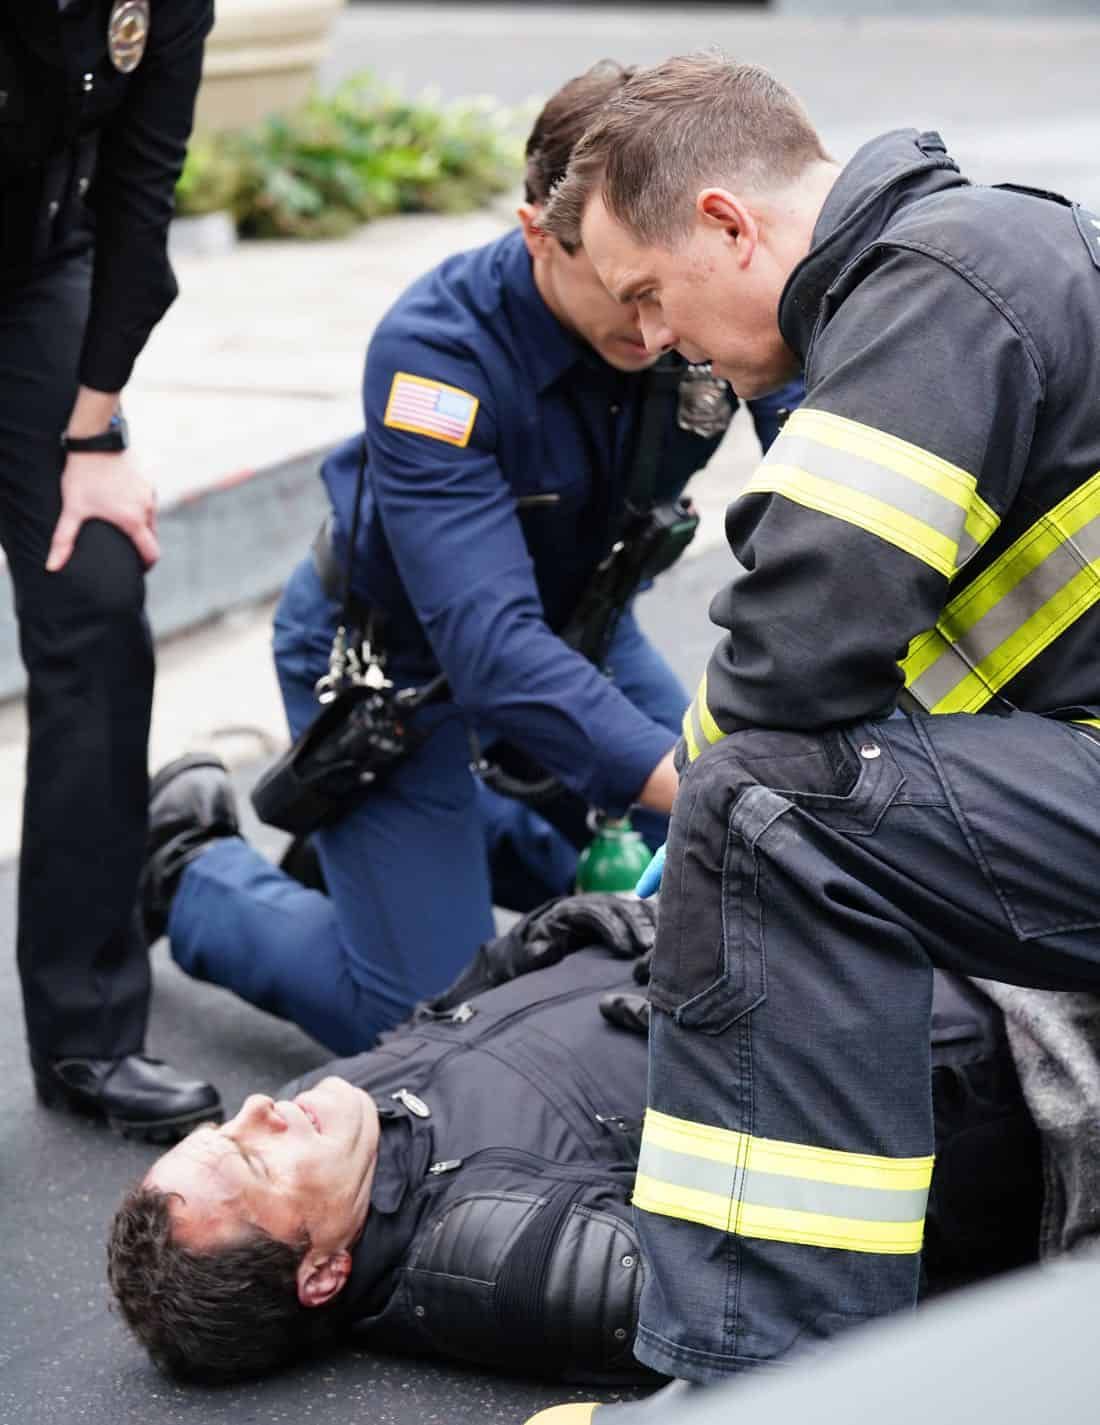 9-1-1: Guest star Andy Buckley (on ground) and Peter Krause (kneeling) in the season finale episode of 9-1-1 airs Wednesday, March 21 (9:00-10:00 PM ET/PT) on FOX. CR: Michael Becker / FOX, © 2018 FOX Broadcasting.